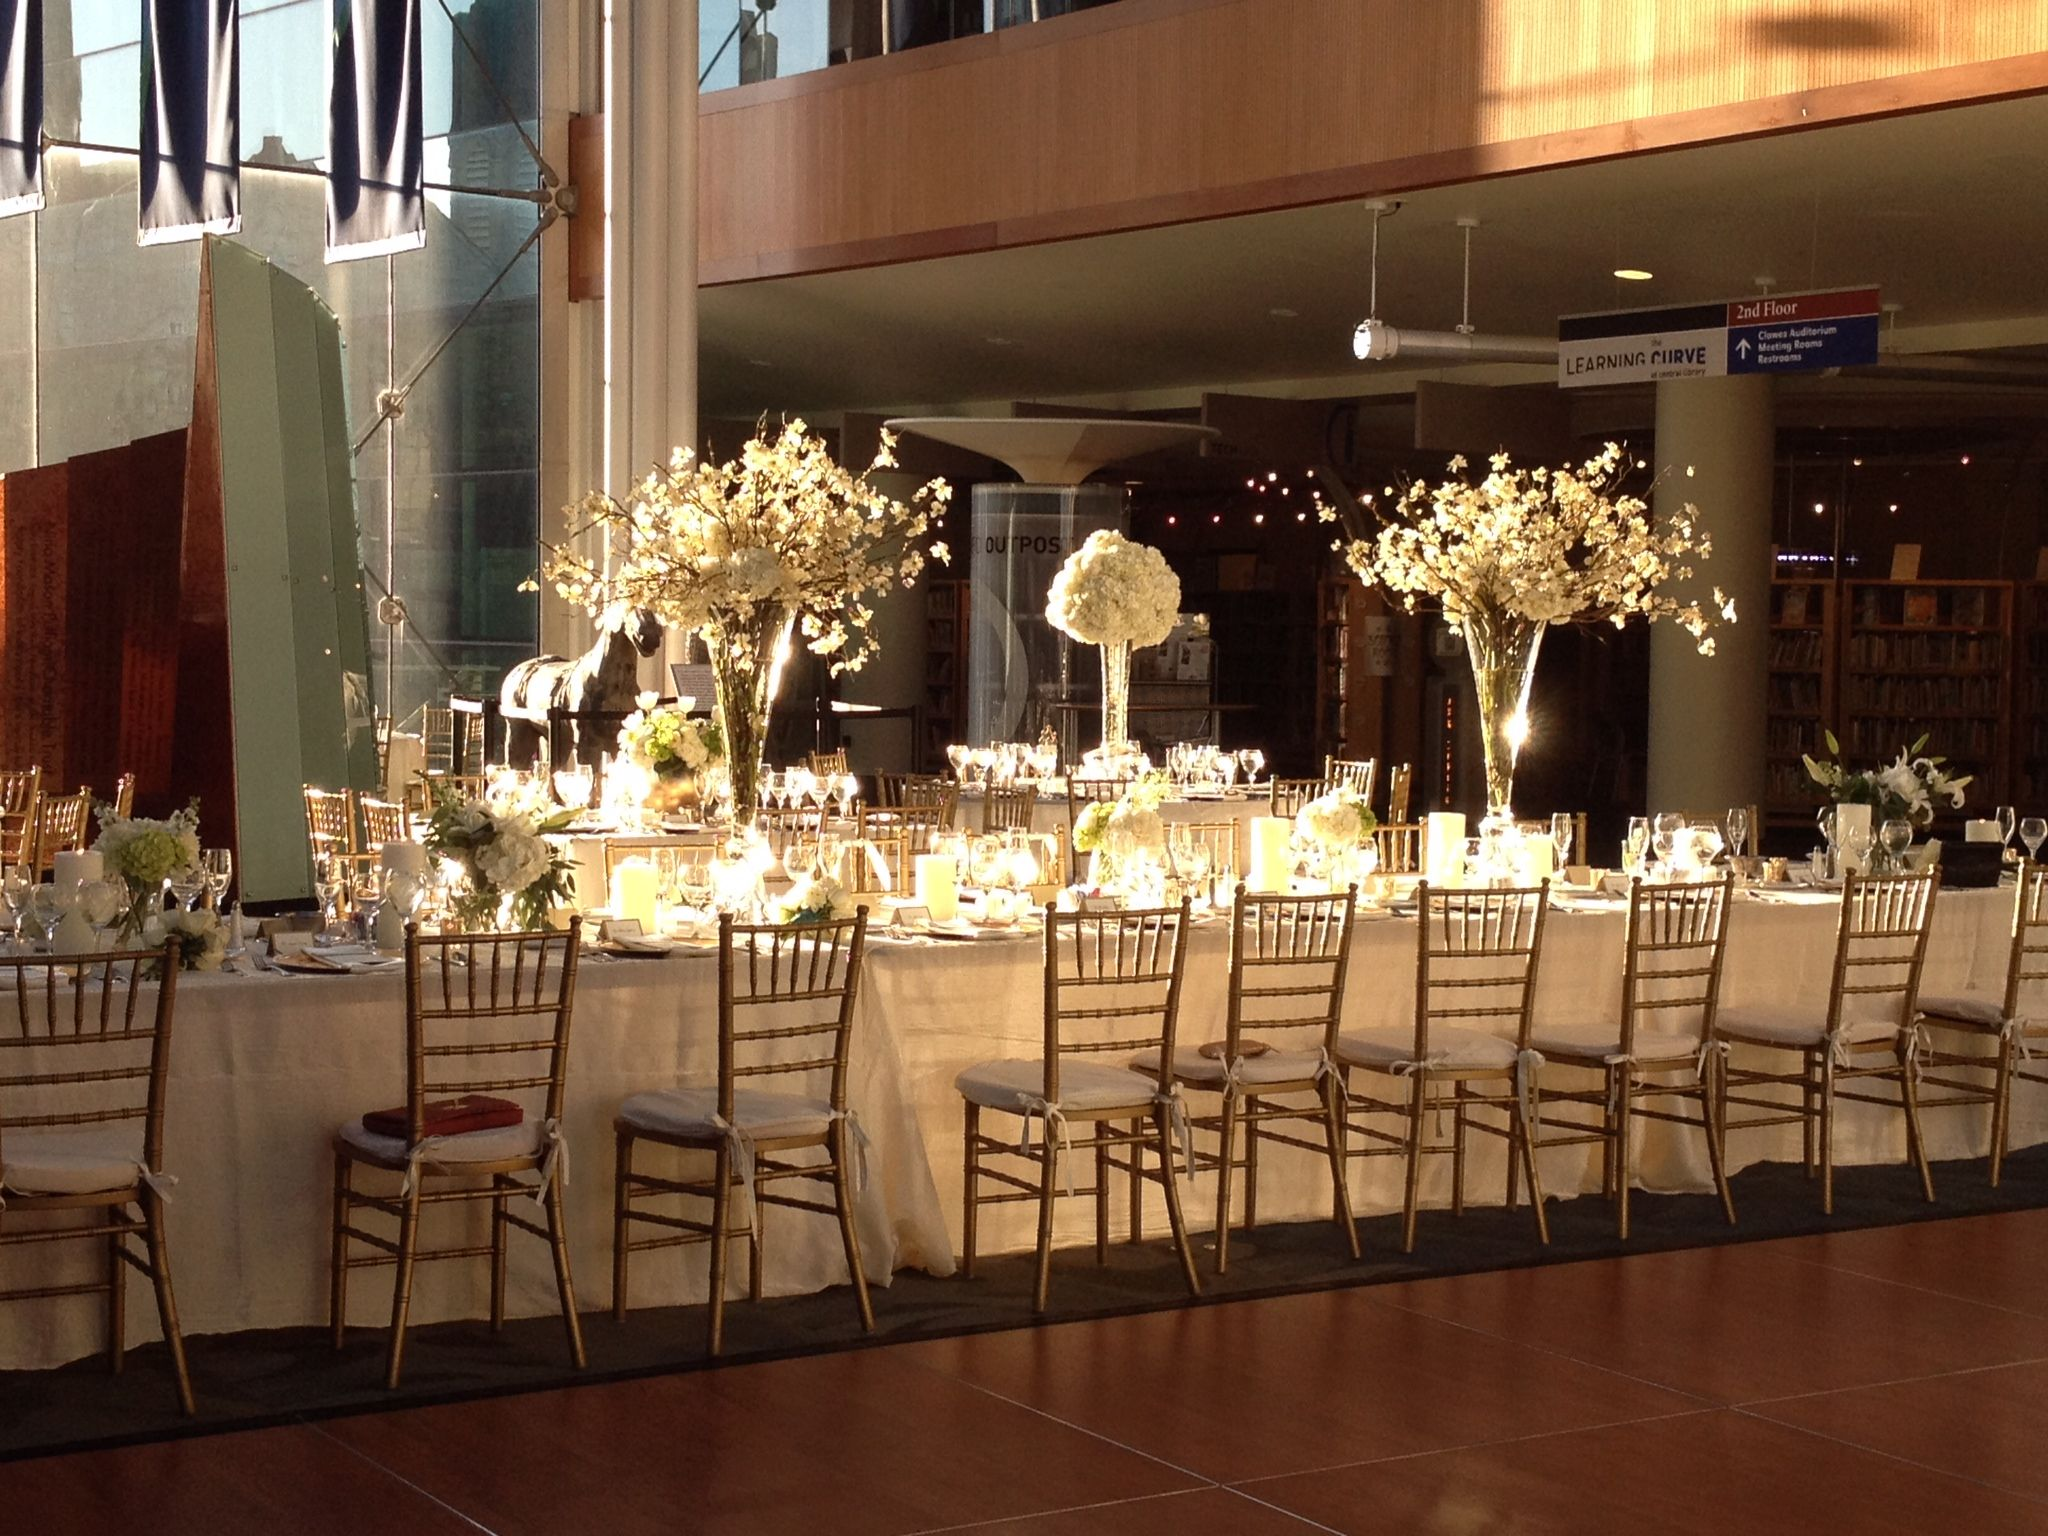 Indianapolis Public Library Ritz Charles Caterers Wedding Venues Pinterest And